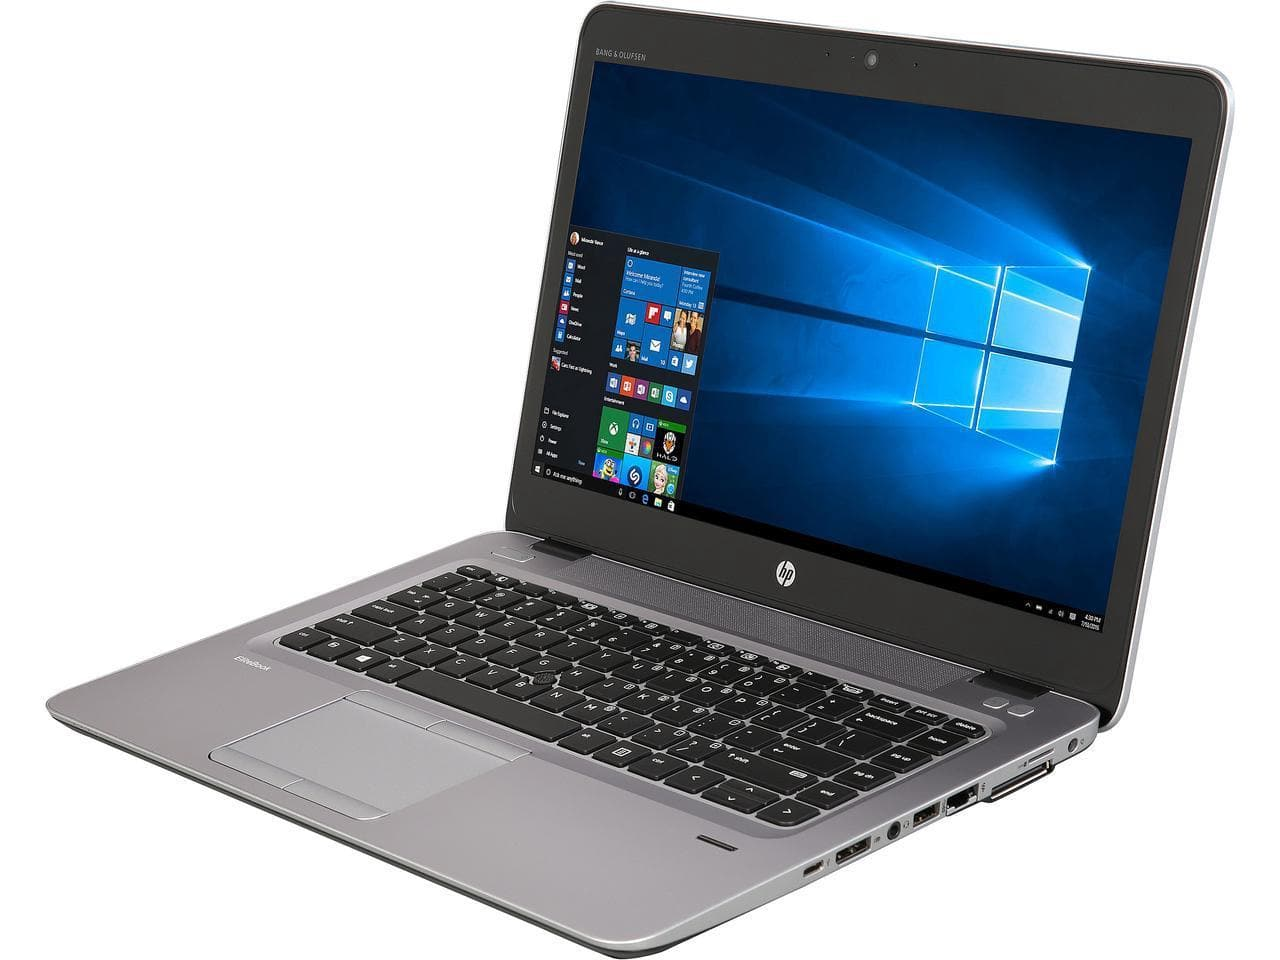 Refurb HP Elitebook 745 G3: 14'', A10-8700B, 8GB Ram, 256GB SSD, 4G, Type-C, Win10H @ $260 + F/S